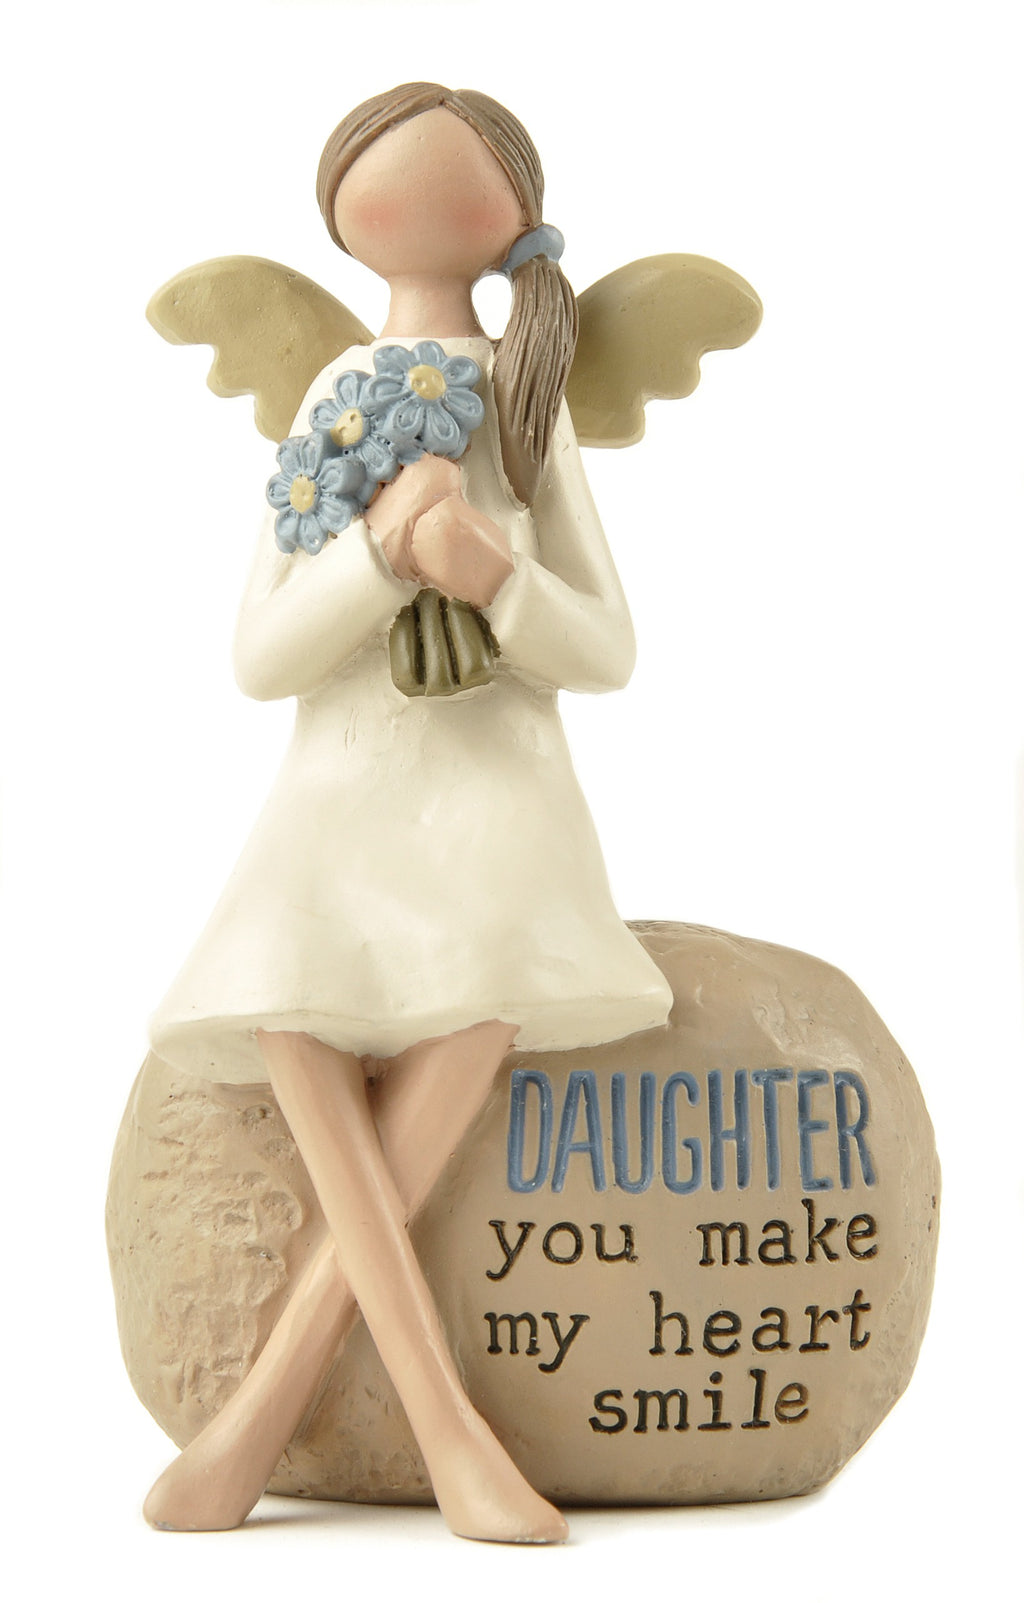 Daughter you make my heart smile - Angel Figurine